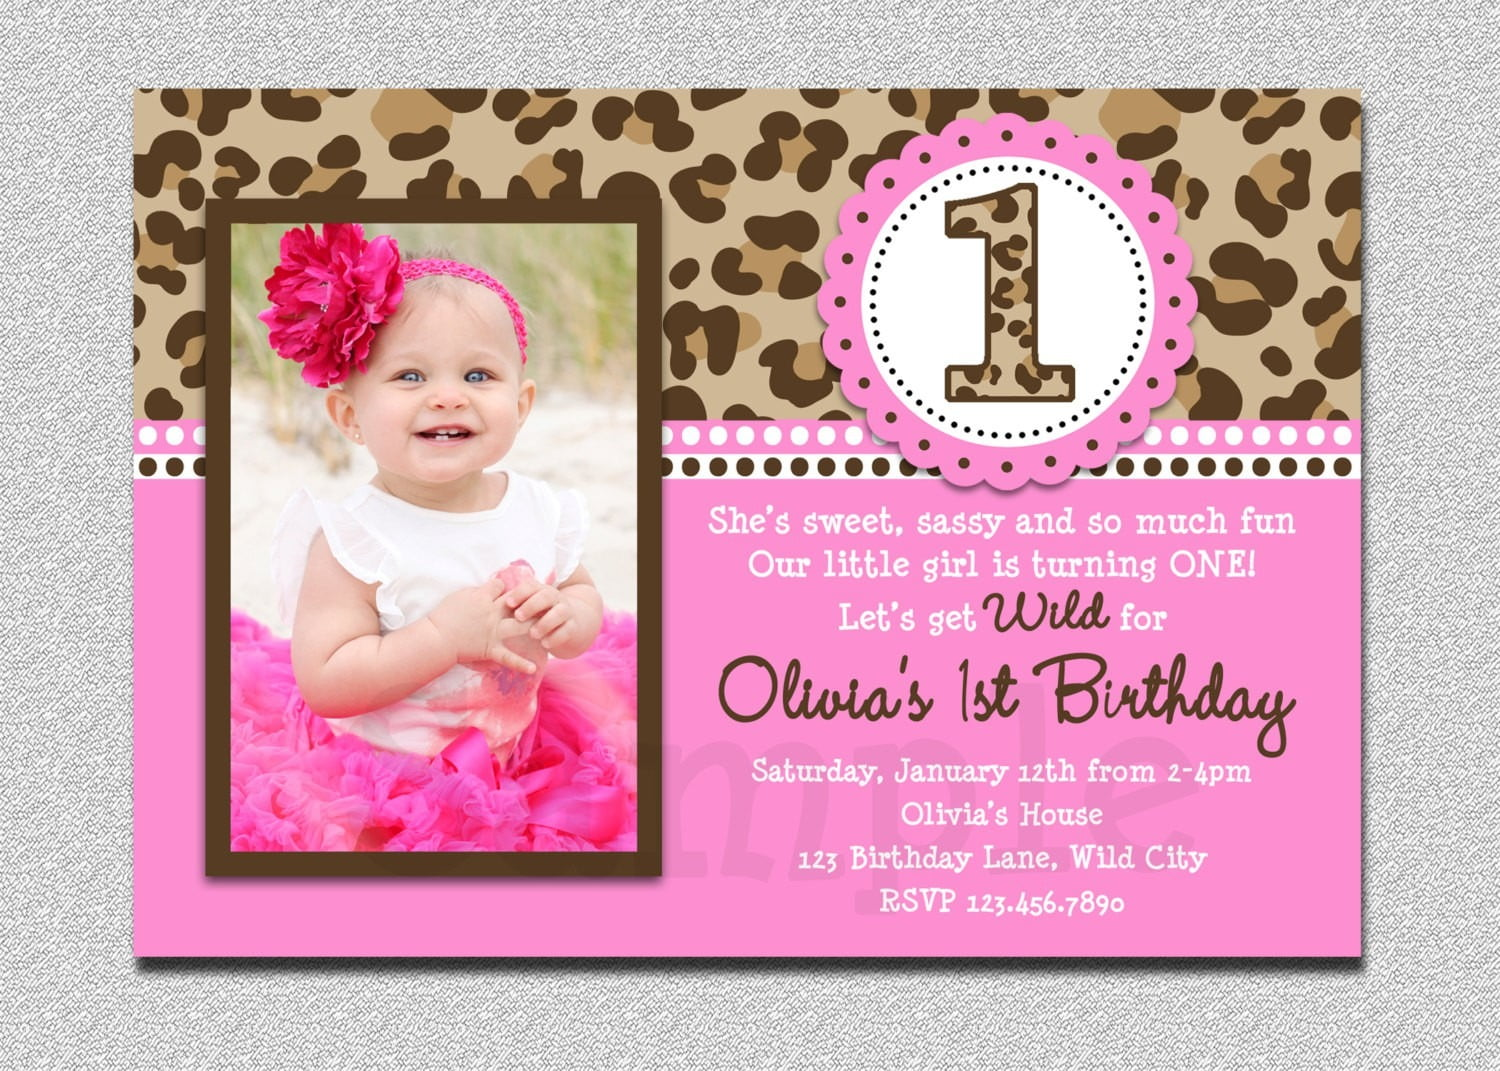 Birthday Invitation Cards For Baby Girl Father Day Gifts From